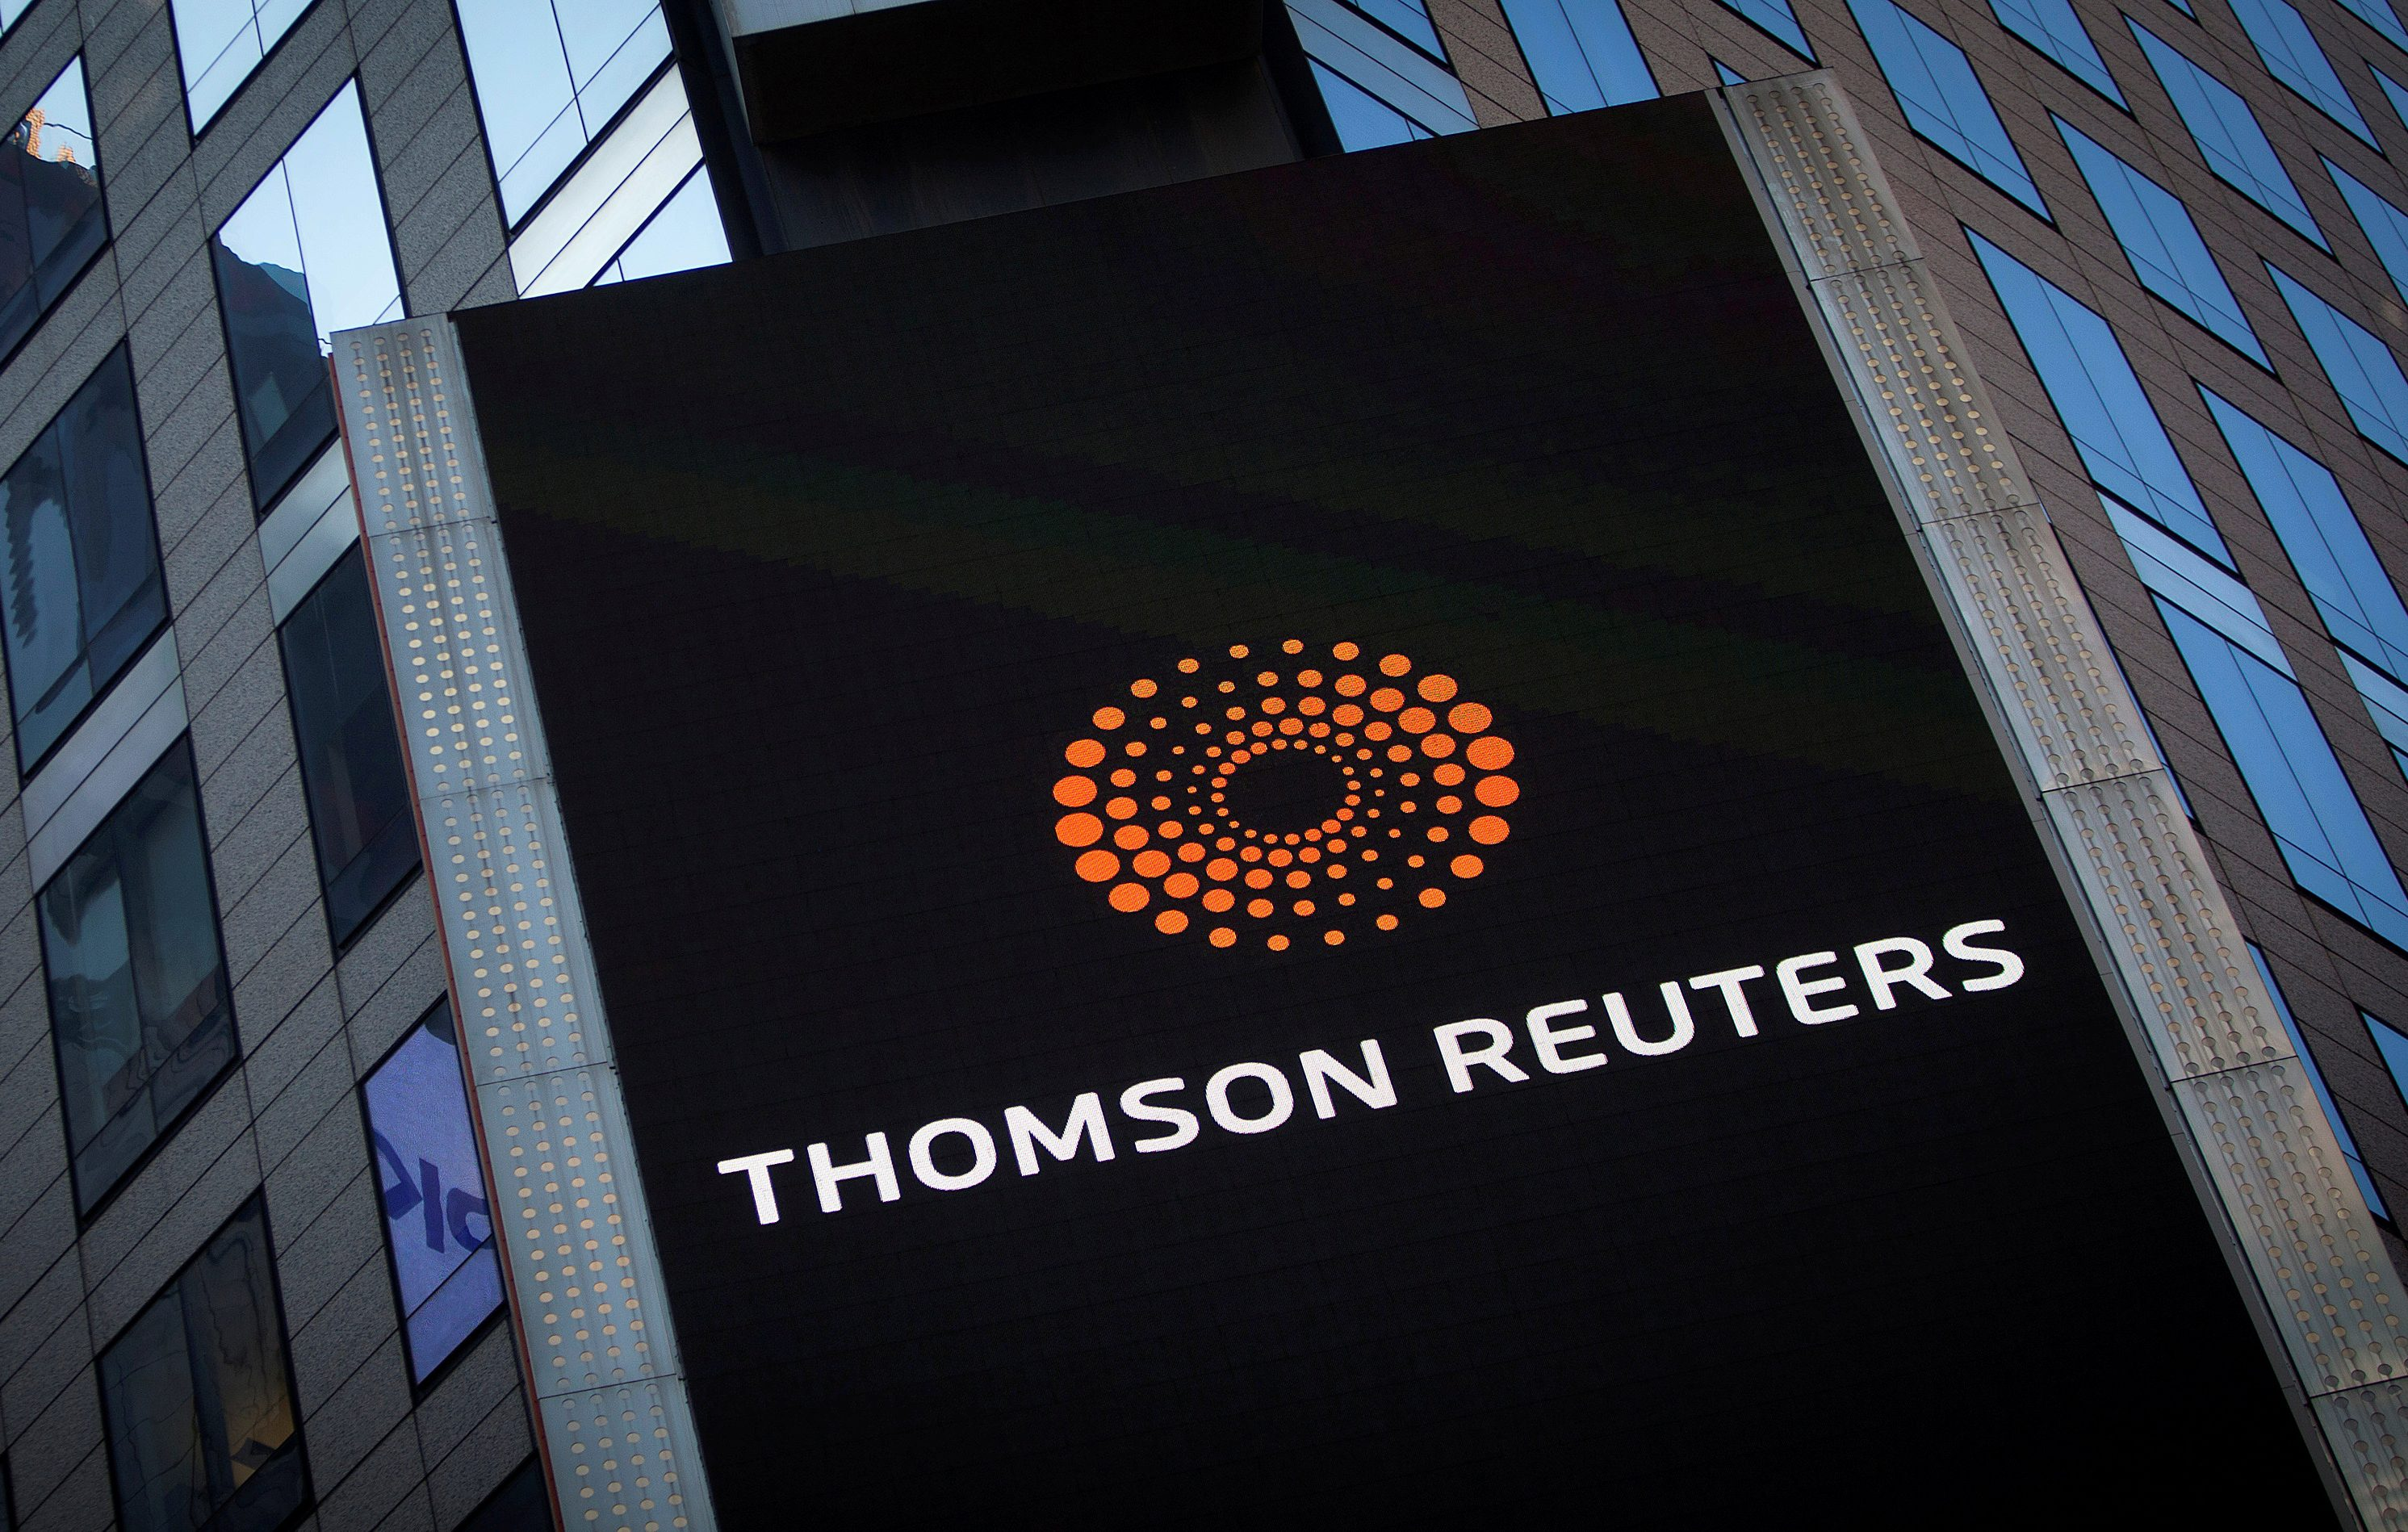 Thomson Reuters beats Blackstone in Refinitiv deal